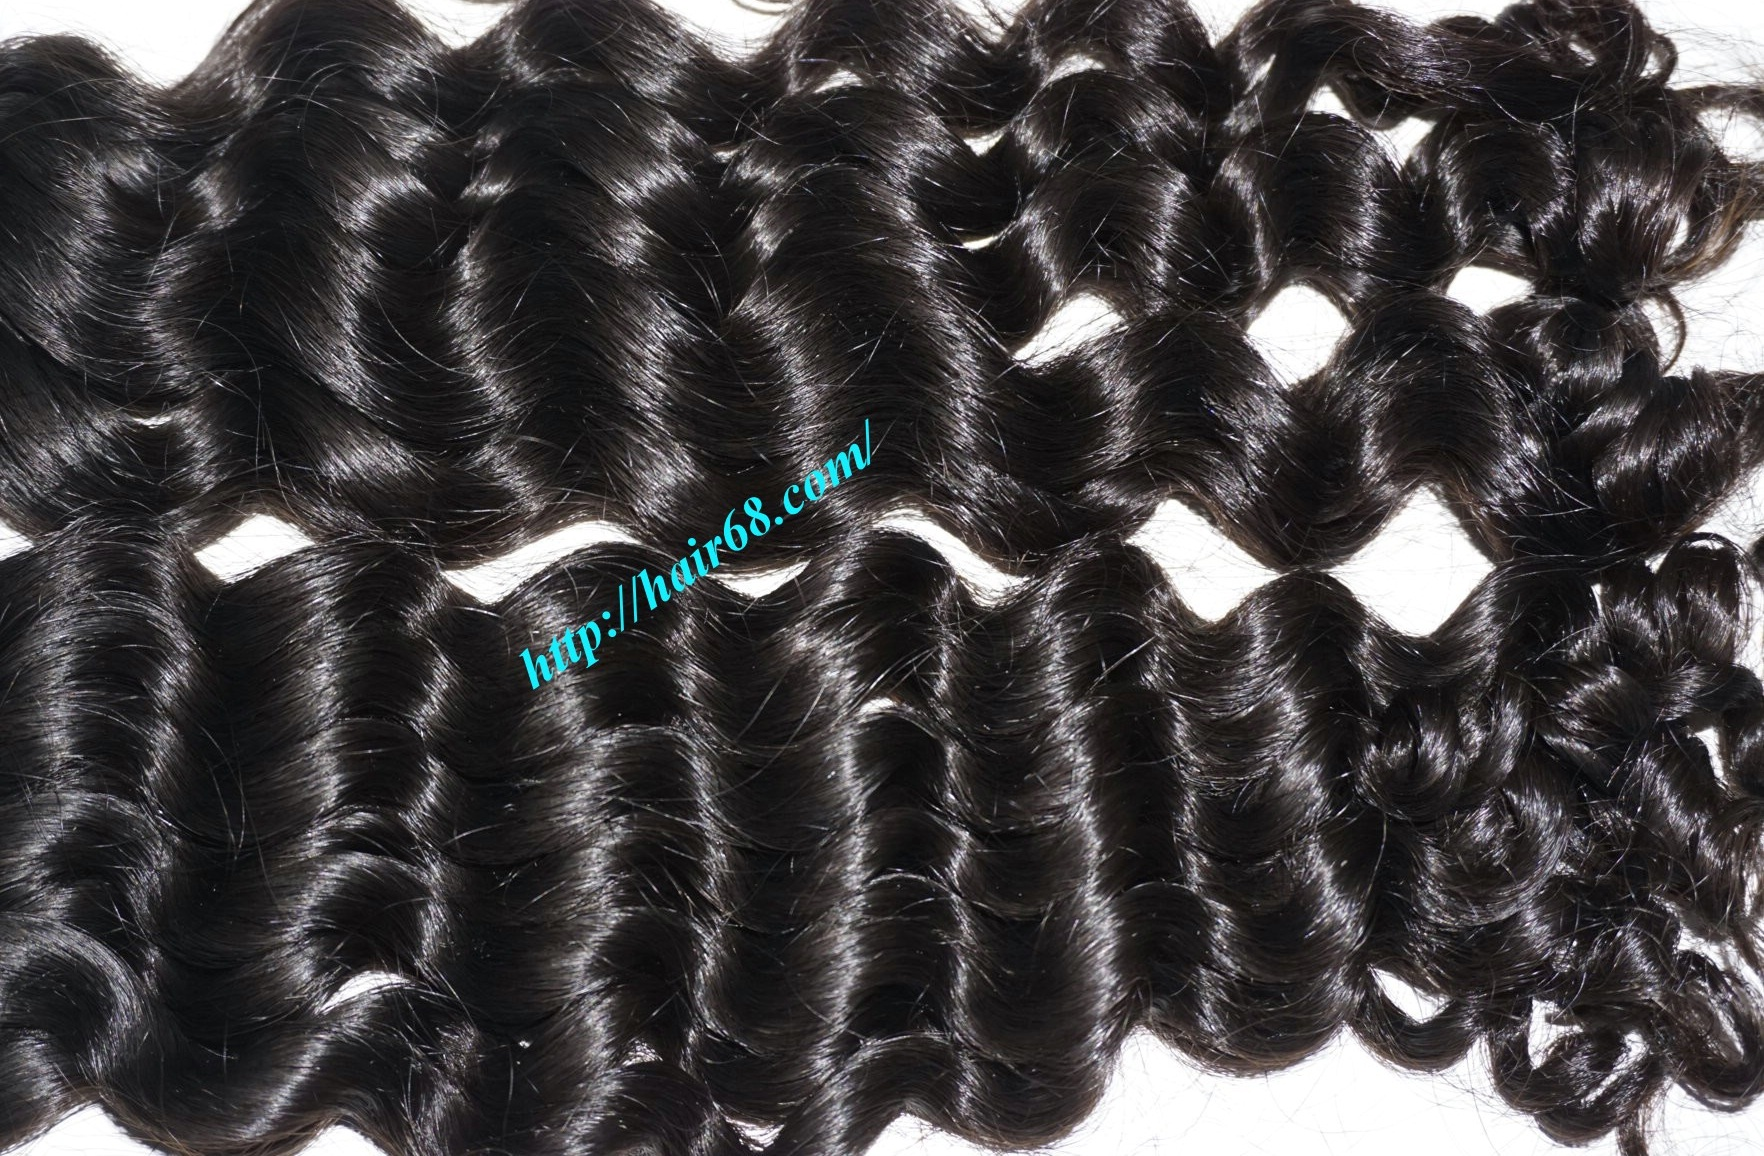 14 inch curly black hair extensions 2